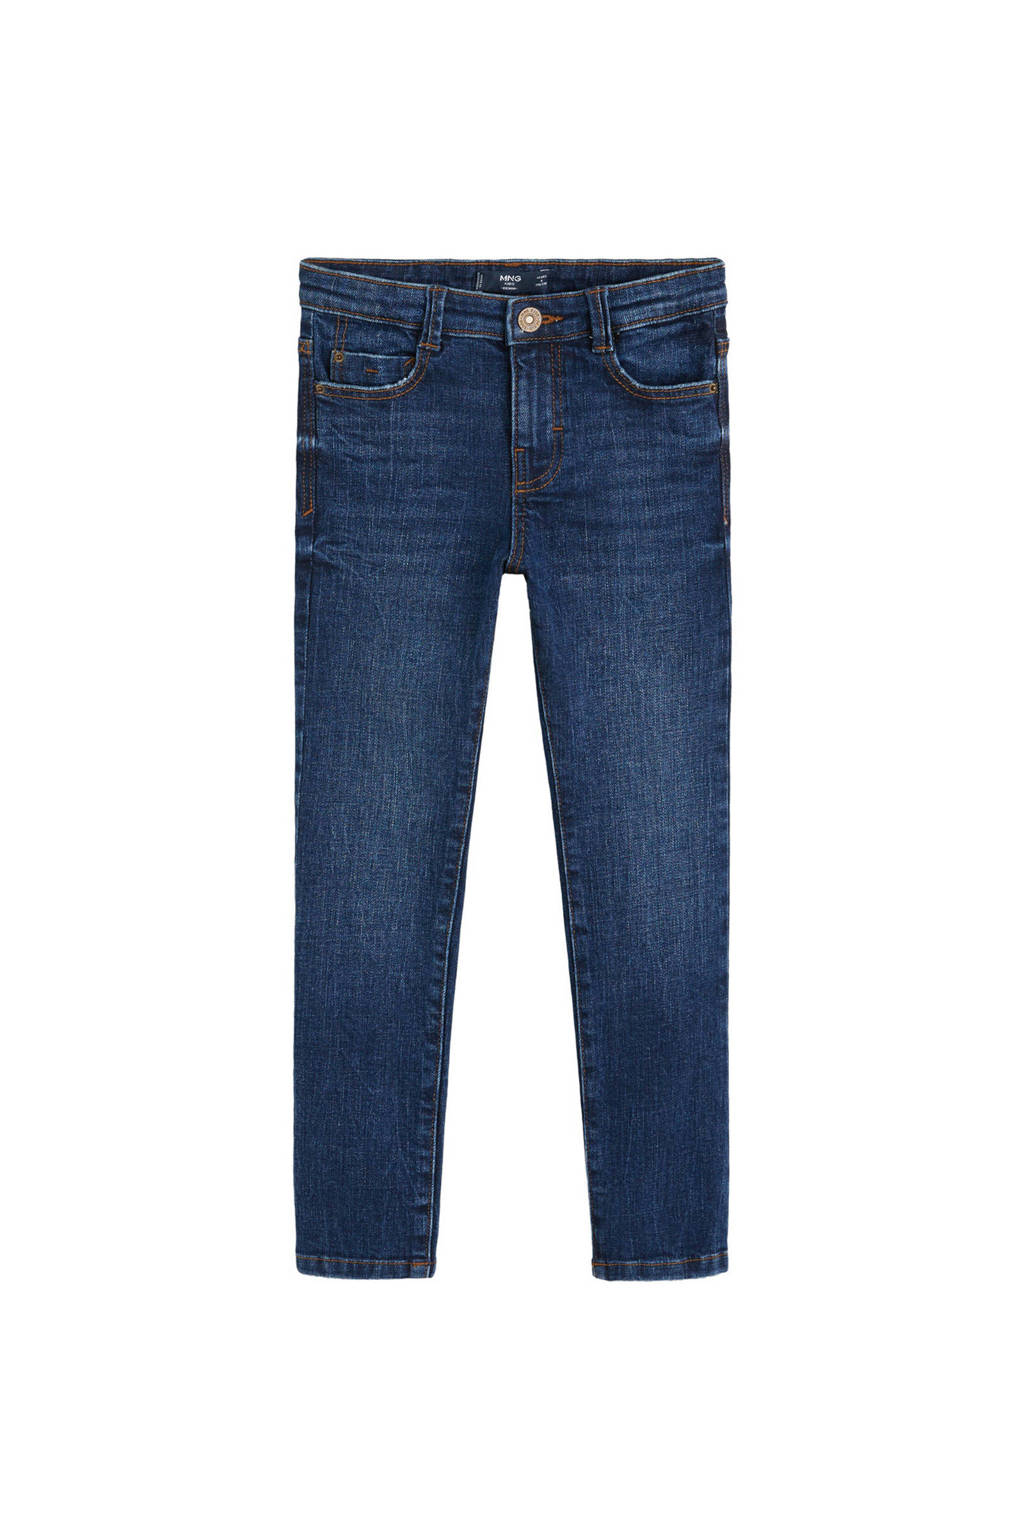 Mango Kids skinny jeans, Dark denim